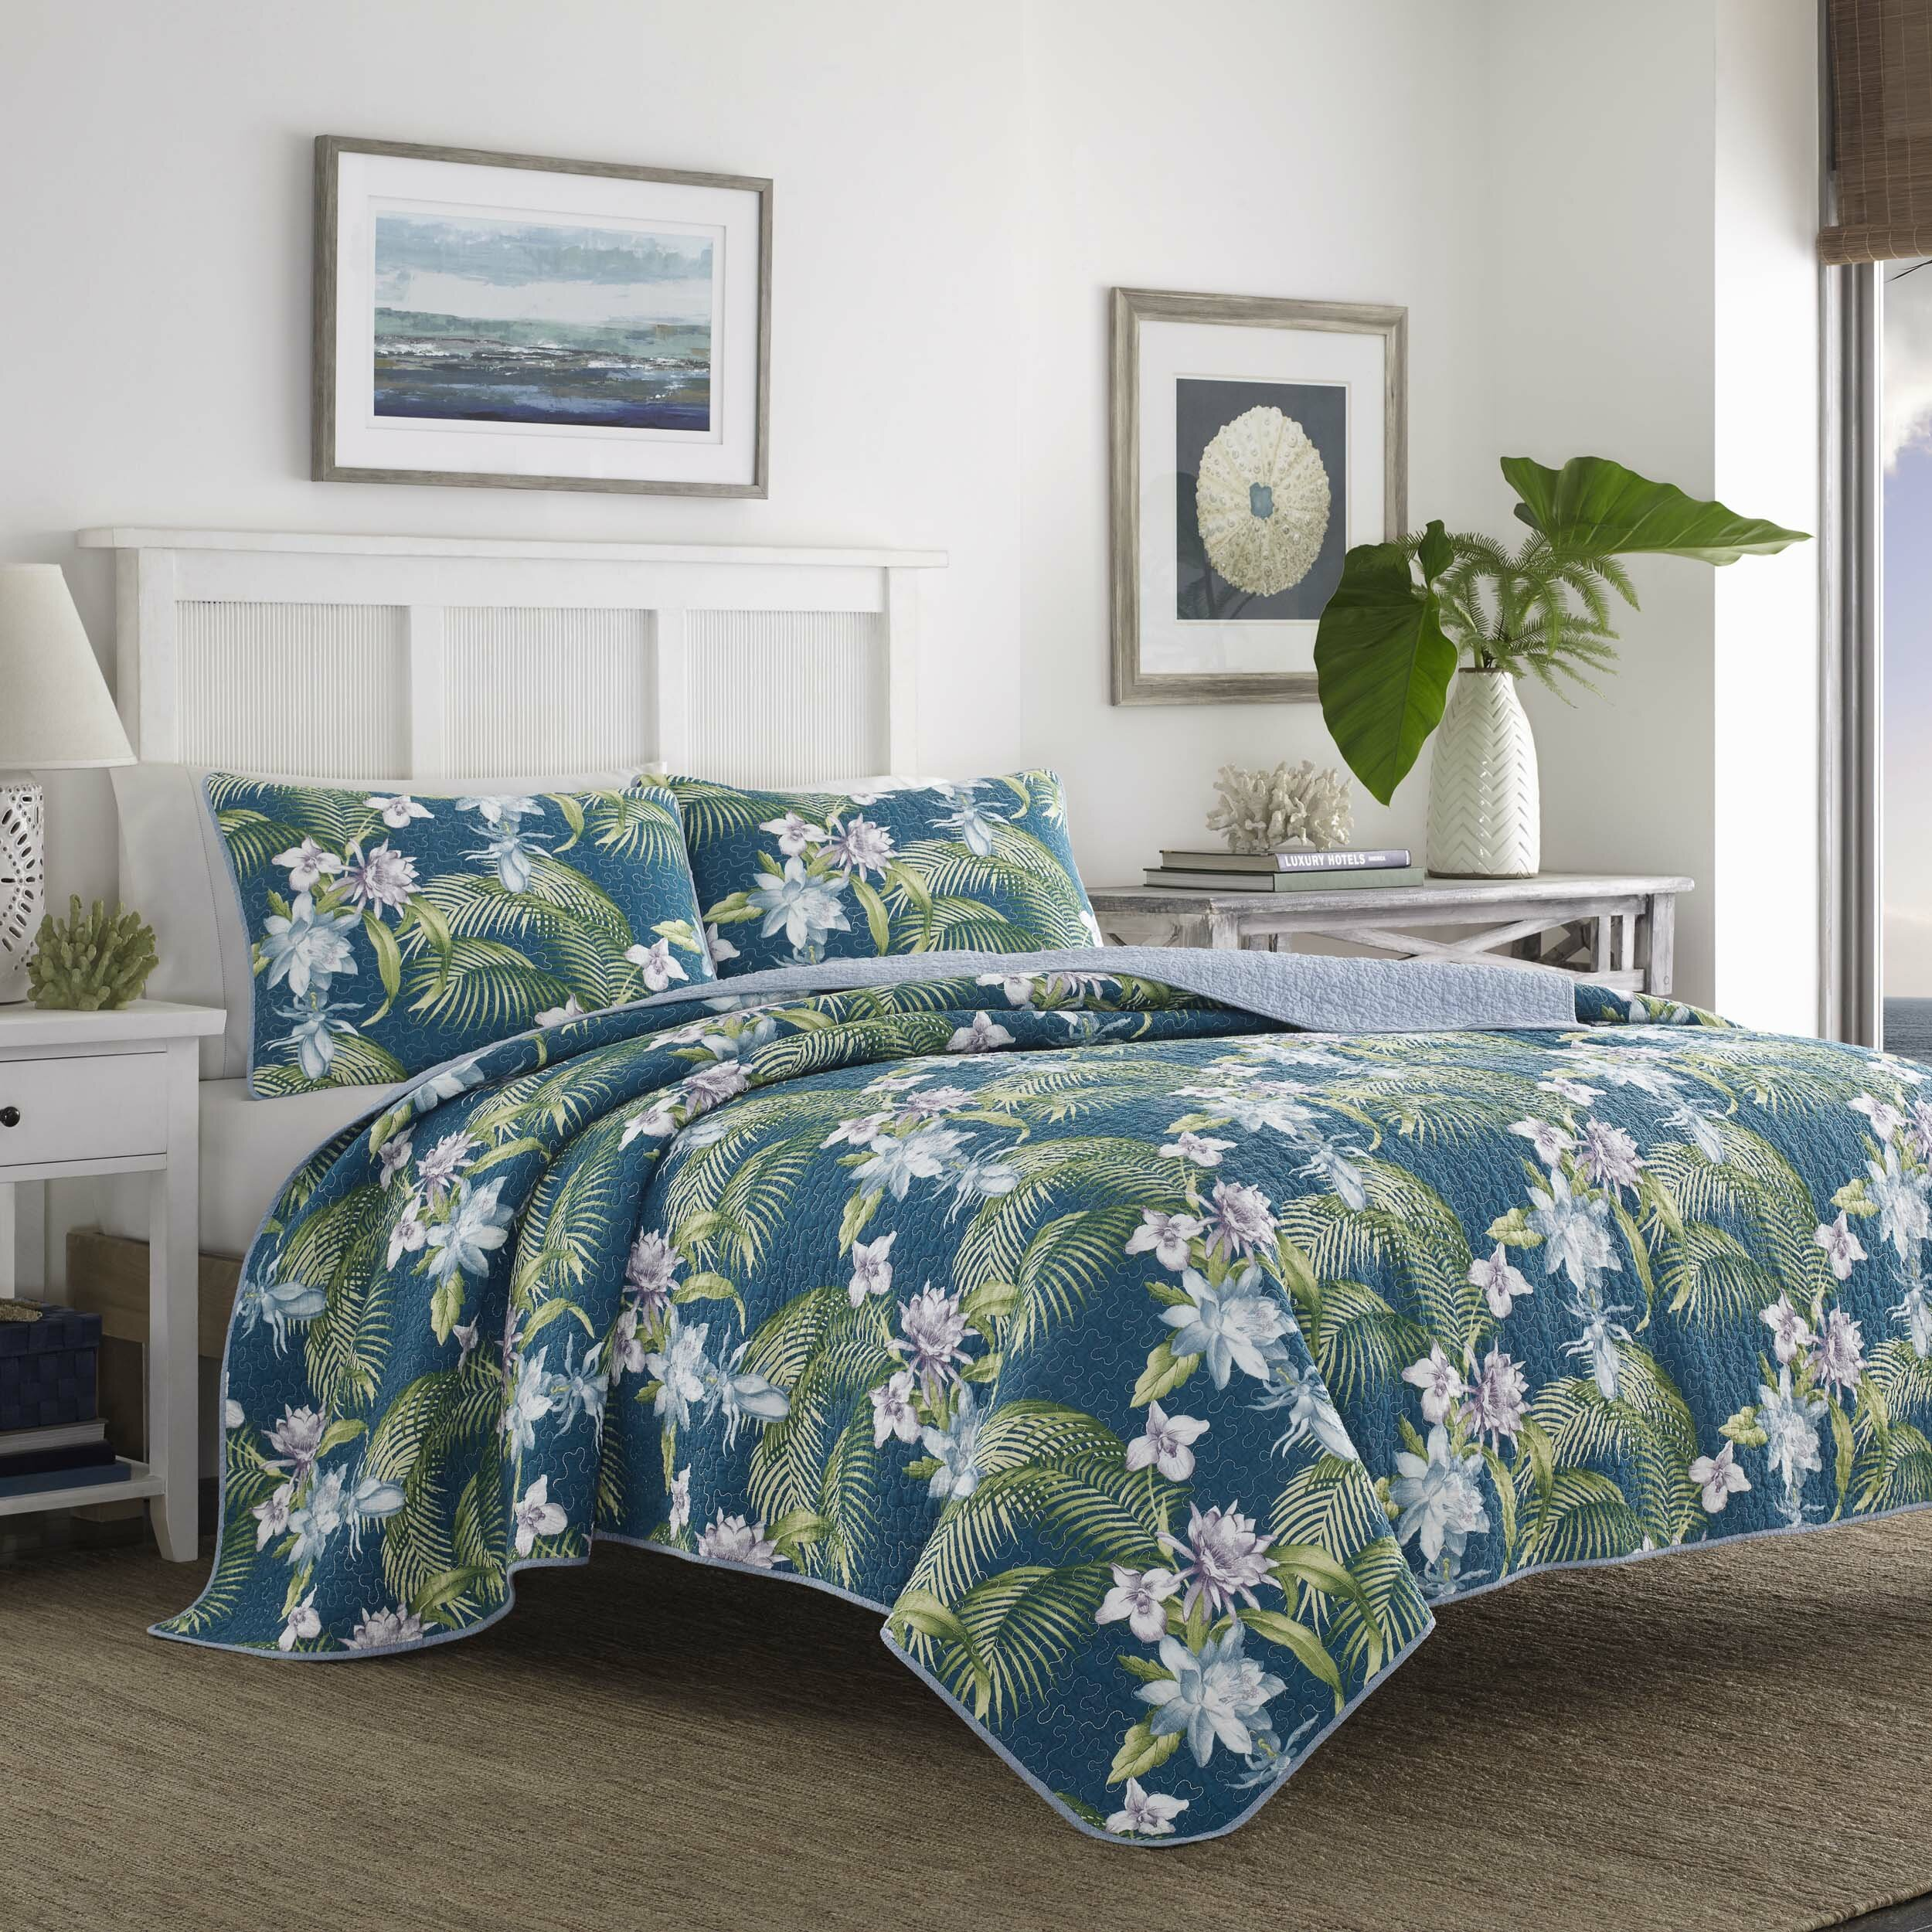 Tommy Bahama Bedding Southern Breeze Reversible Quilt Set